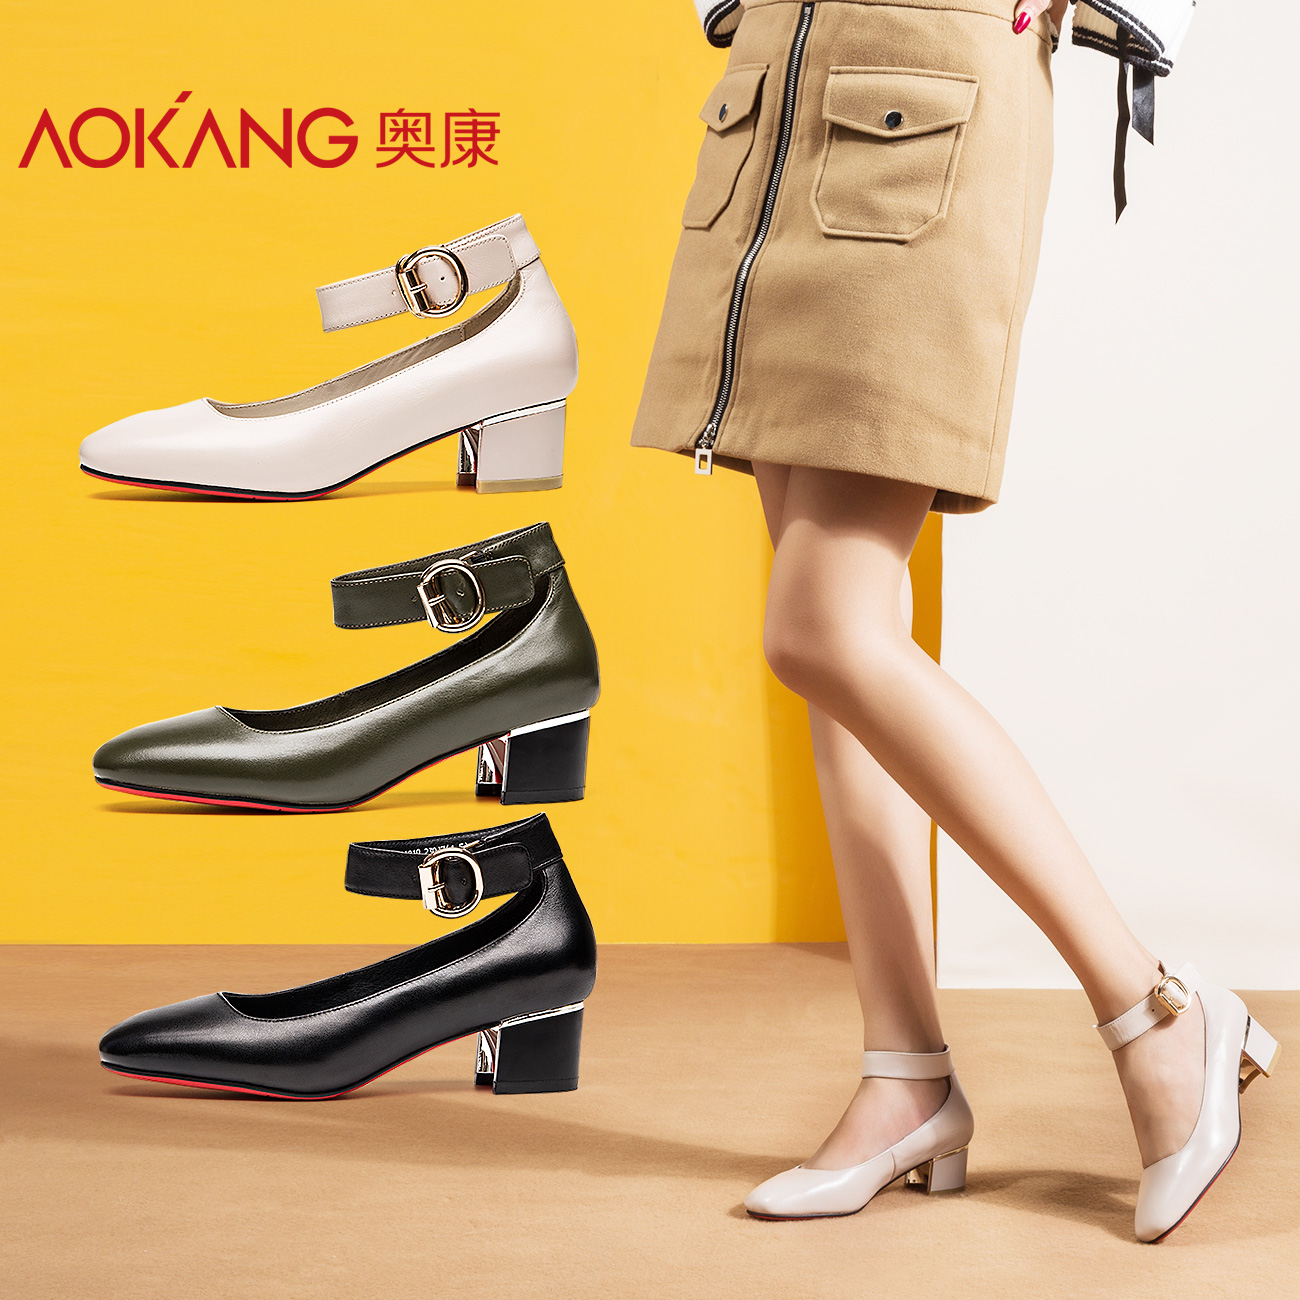 Aokang official flagship store women's shoes retro square head shoes, shallow lipstick soles, thick heels, fashionable dress women's single middle heel